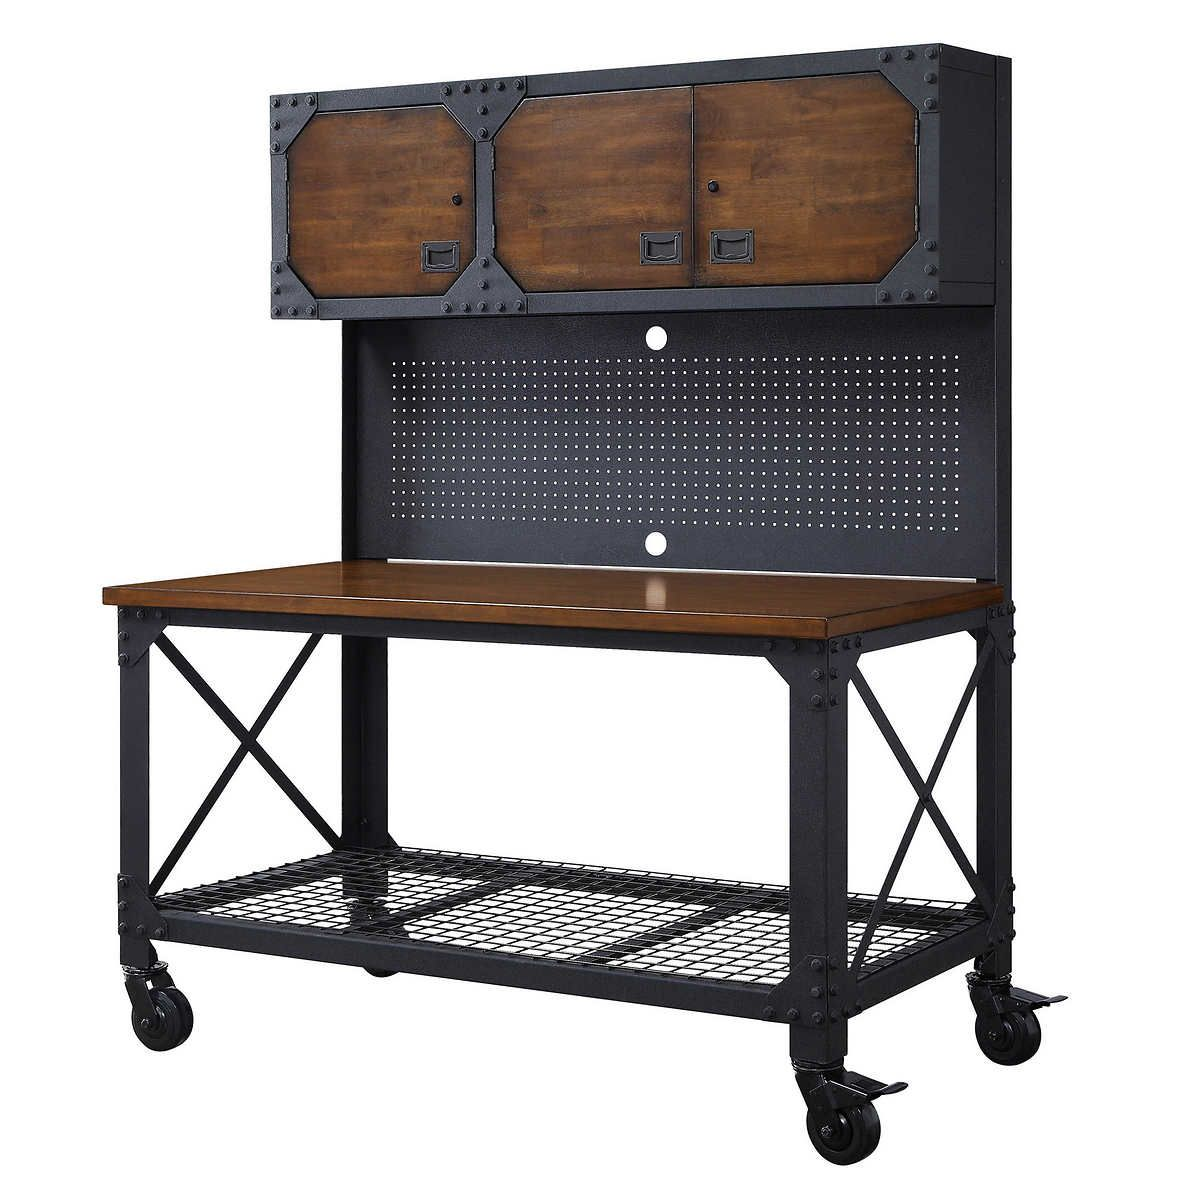 Garage Storage Costco 10 Workshop Storage Products You Can Get At Costco In 2019